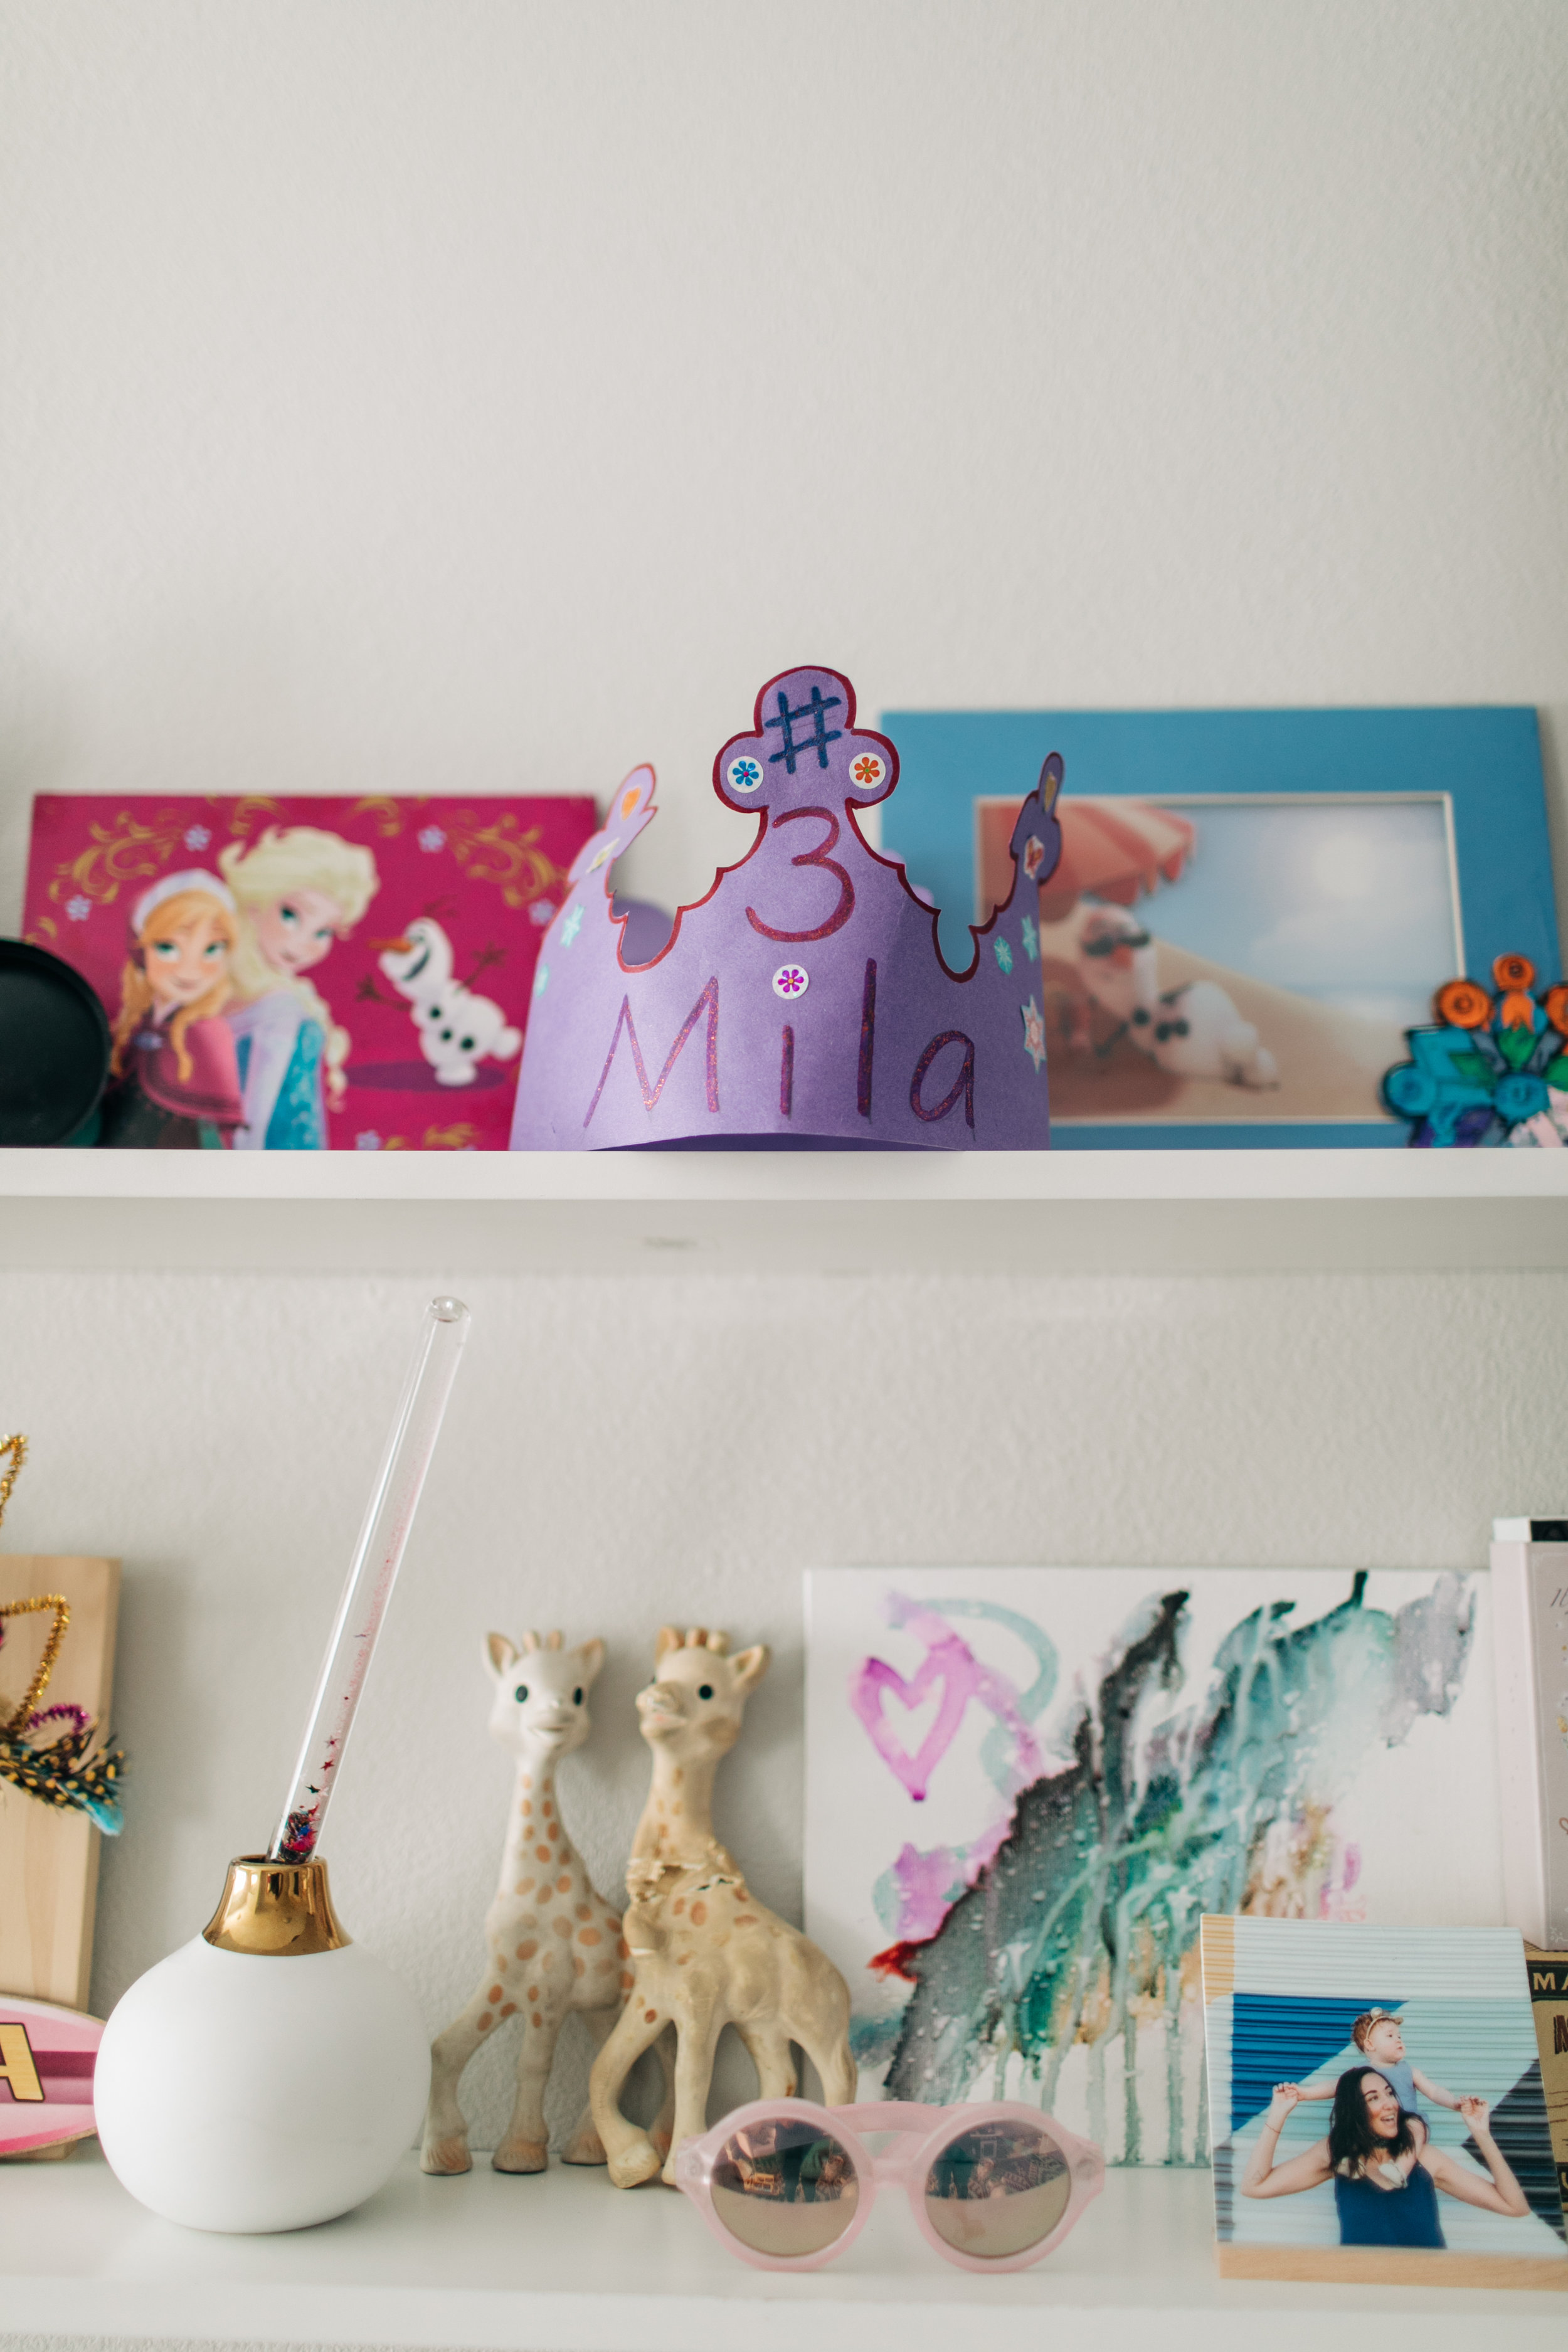 At the top there is a birthday crown Mila's teacher made her when they celebrated her birthday at school. I bought that art print of Olaf laying in the sand a few months after I lost Ryan. I love it so much. Also I have Ryan and Mila's Sophie Giraffe teethers displayed. Ryan's is nine years old now, they are both such treasures.